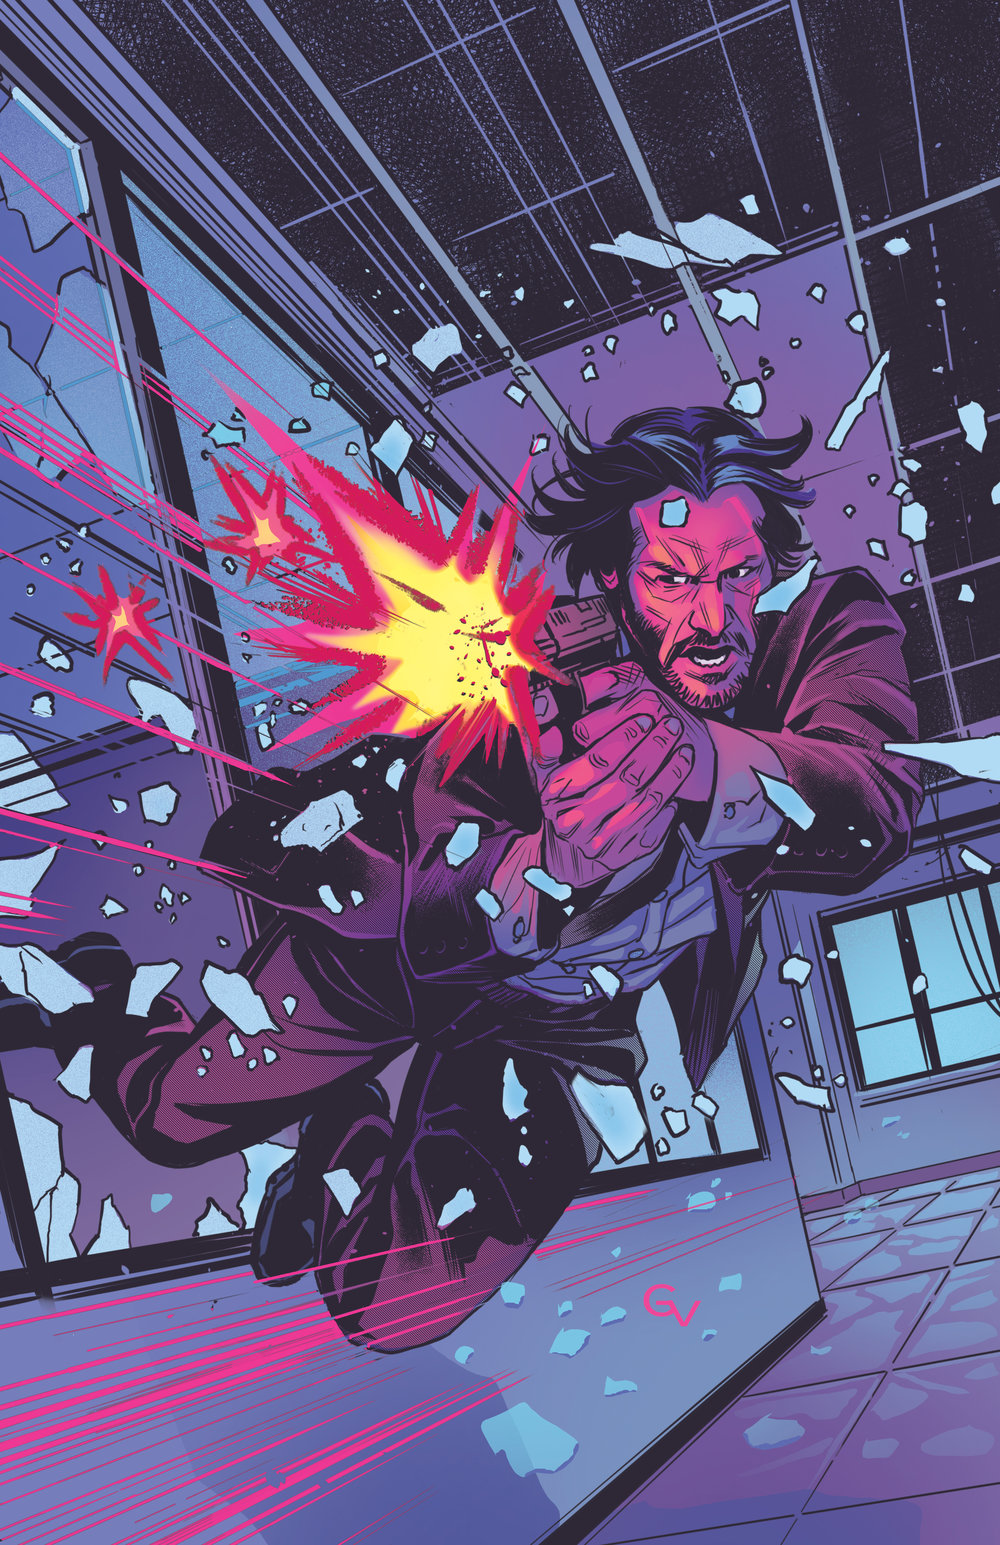 John Wick cover 4 colors.jpg